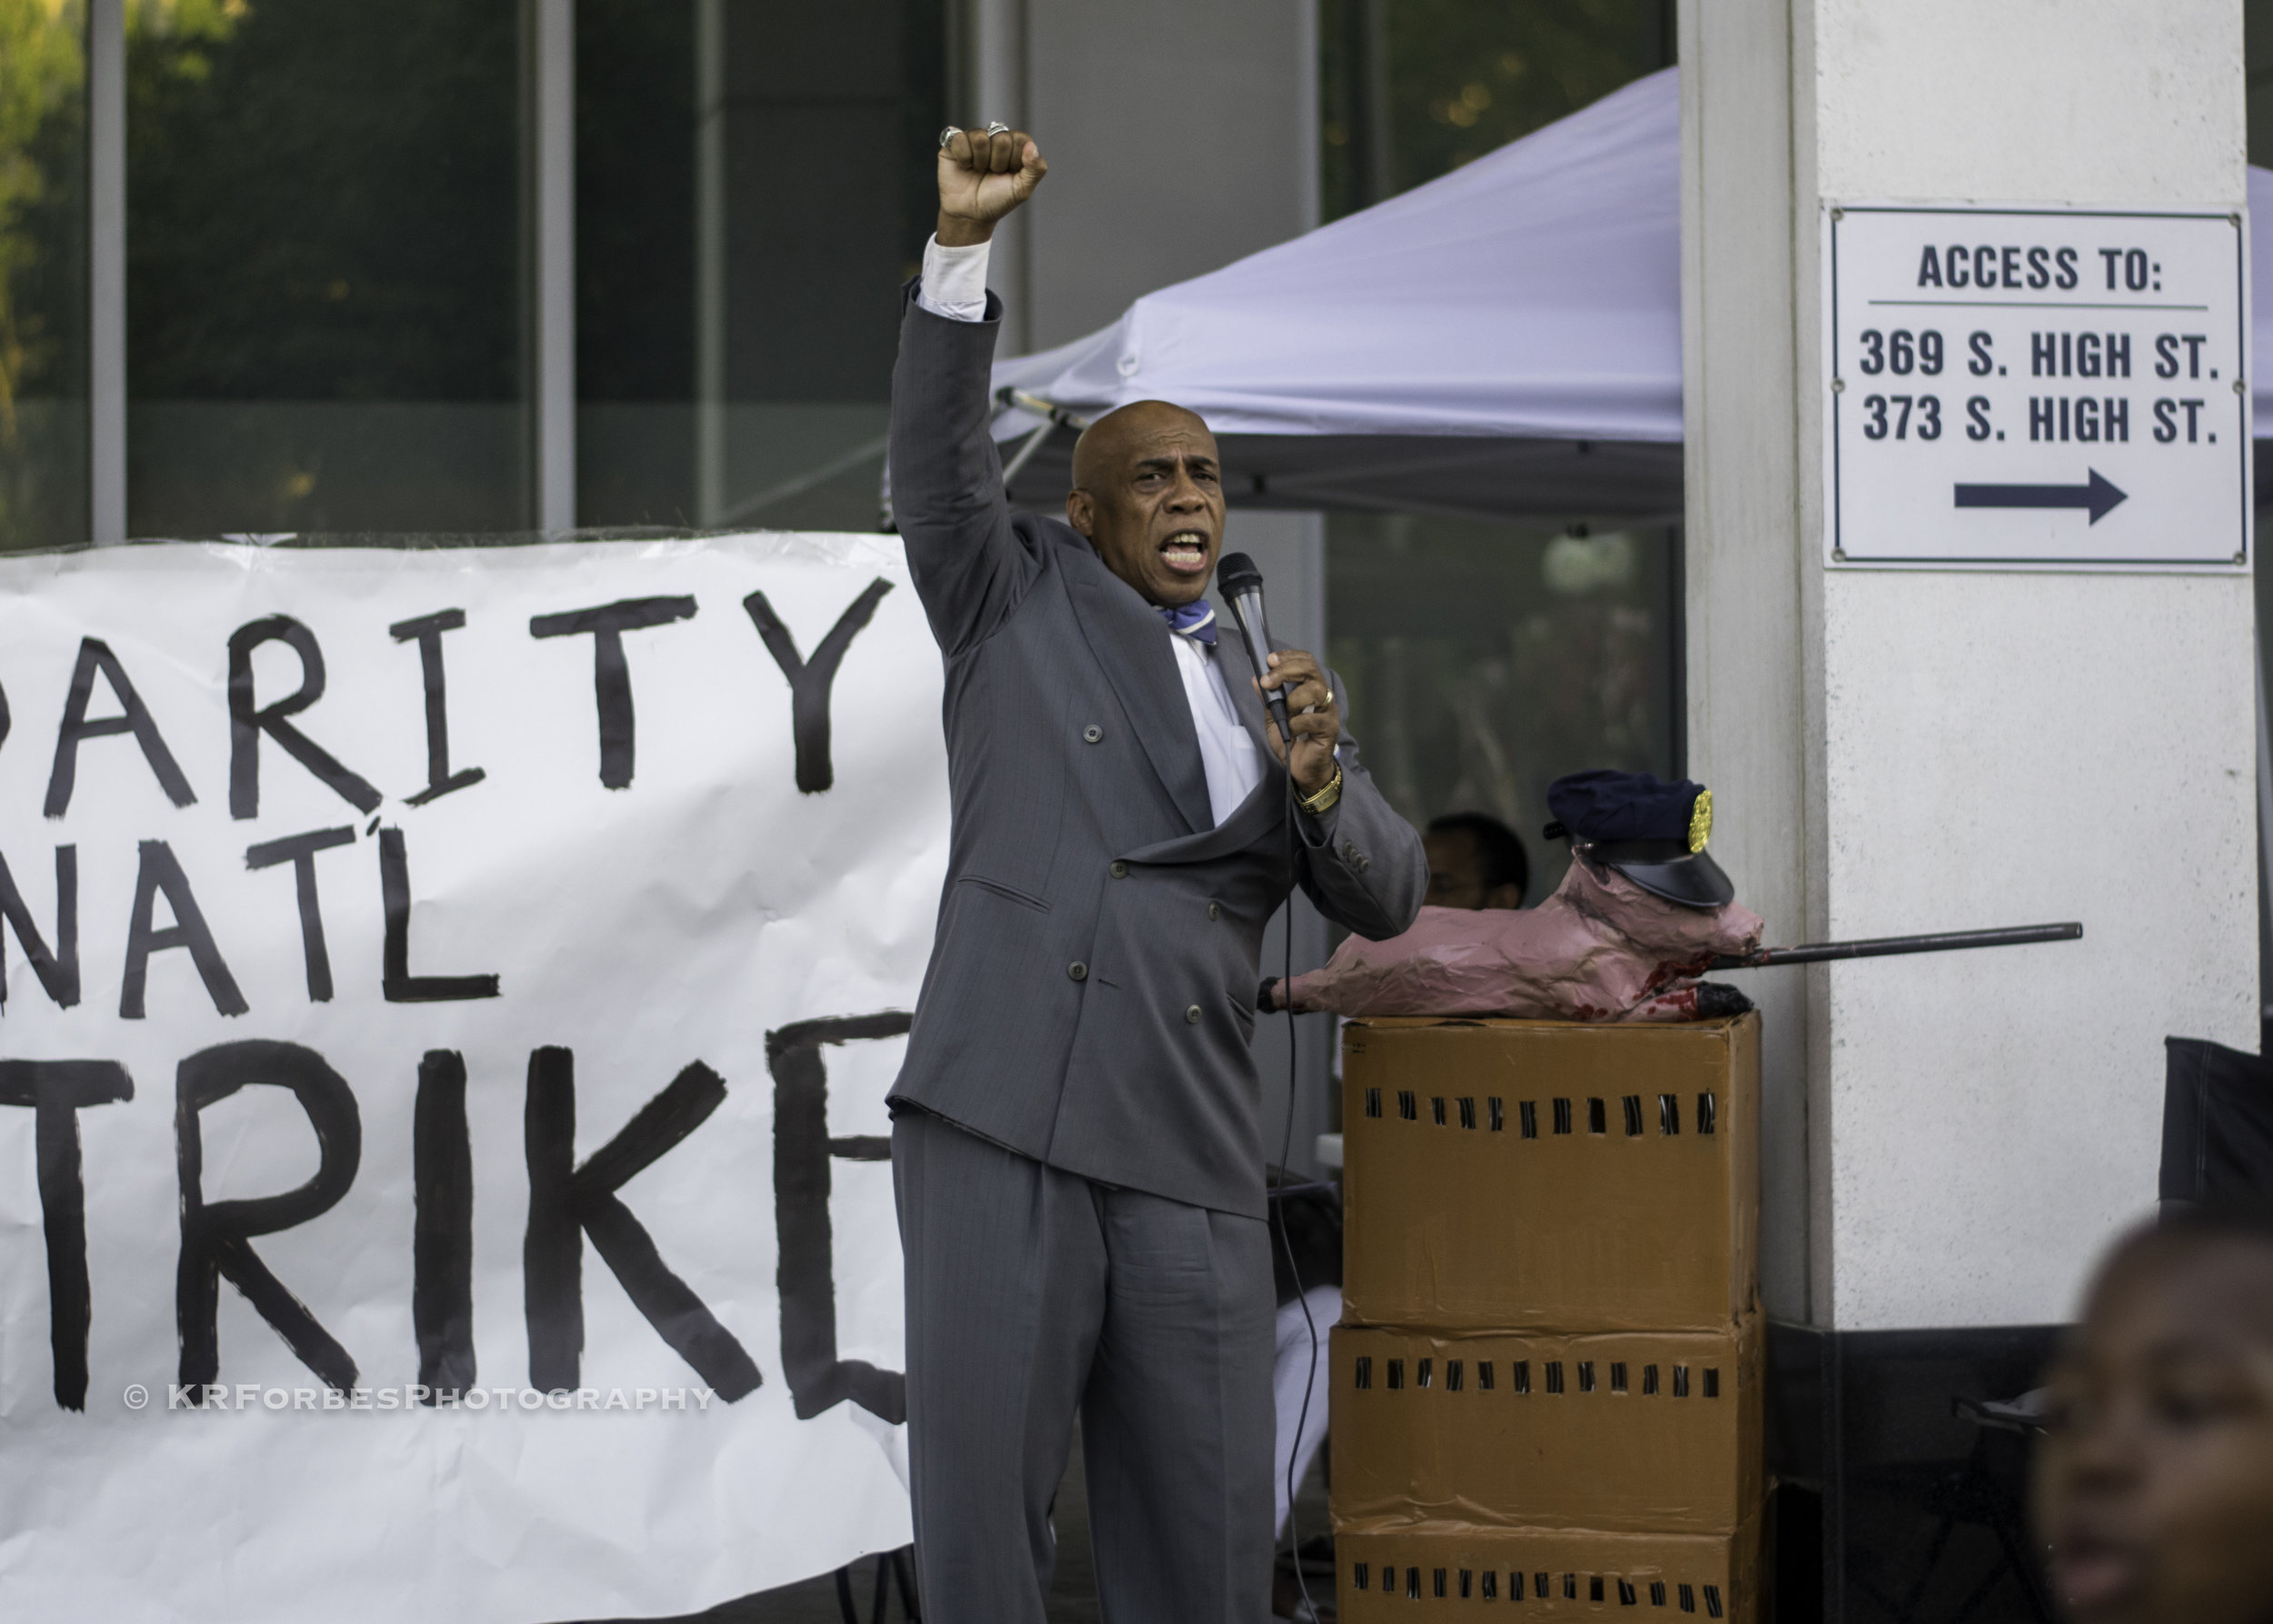 Lionel Muhammad, wrongfully imprisoned for over 23 years, addresses the crowd gathered at the Franklin County courthouse.